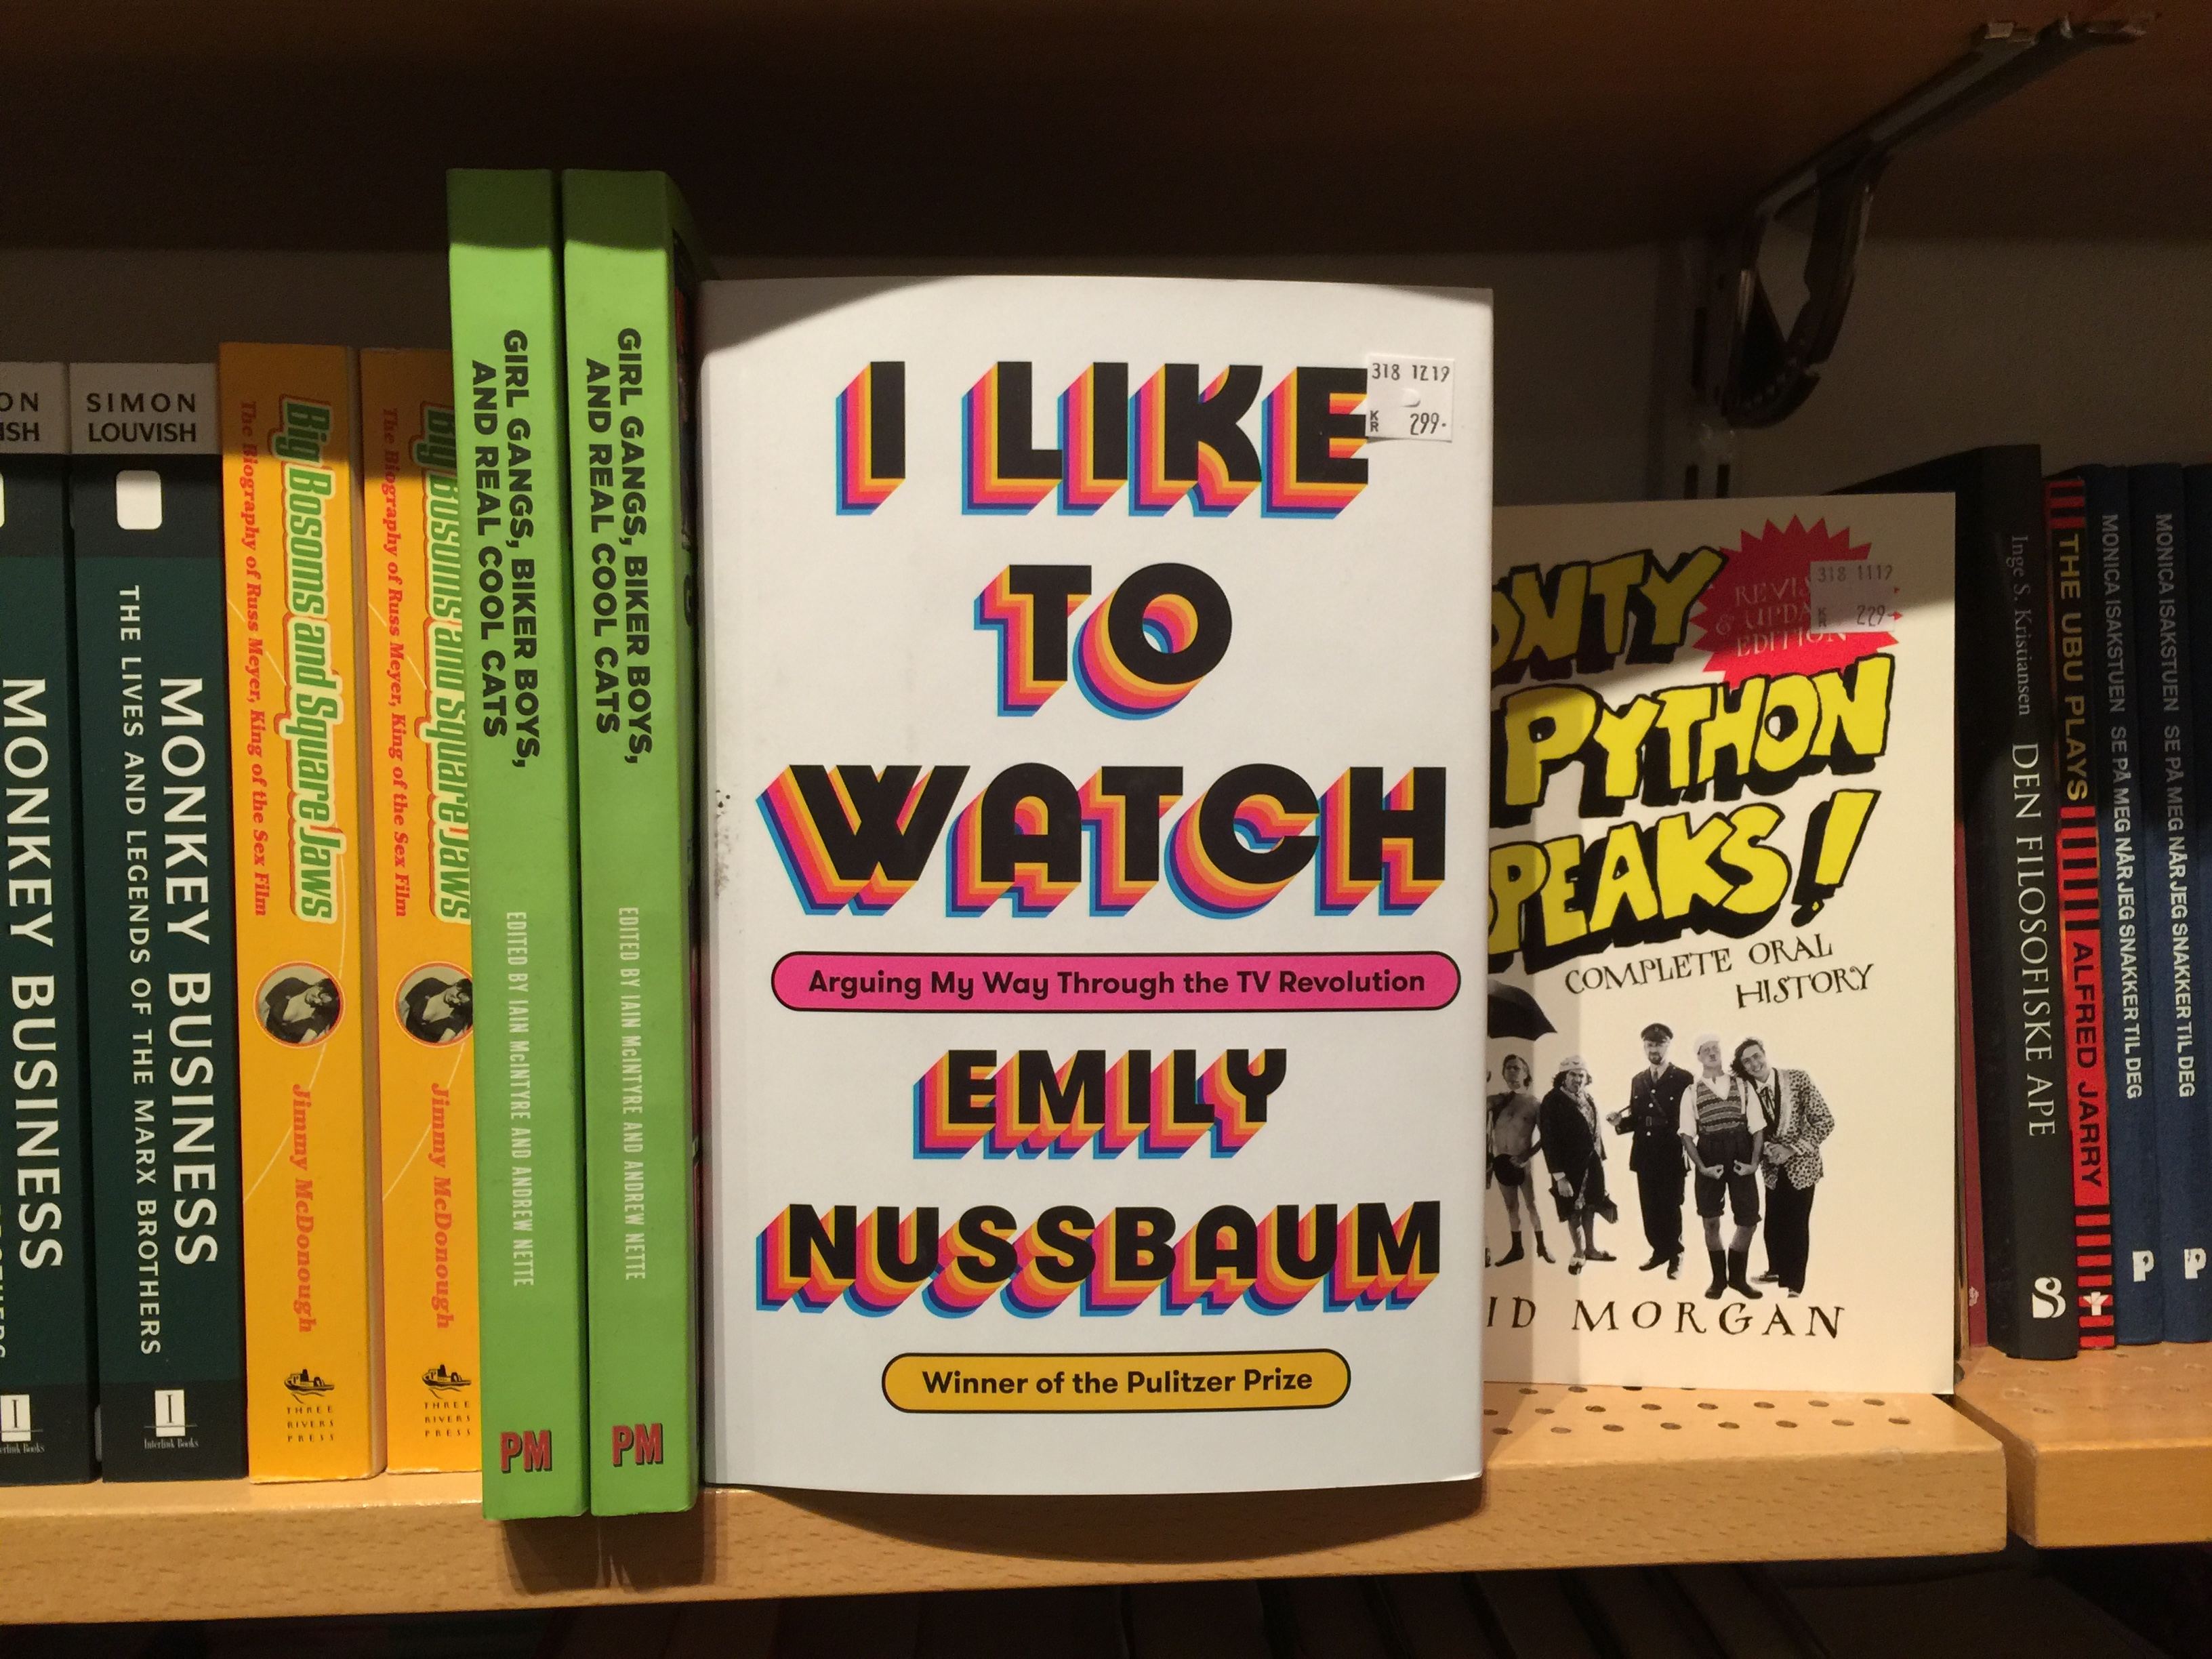 I like to watch_Emily Nussbaum